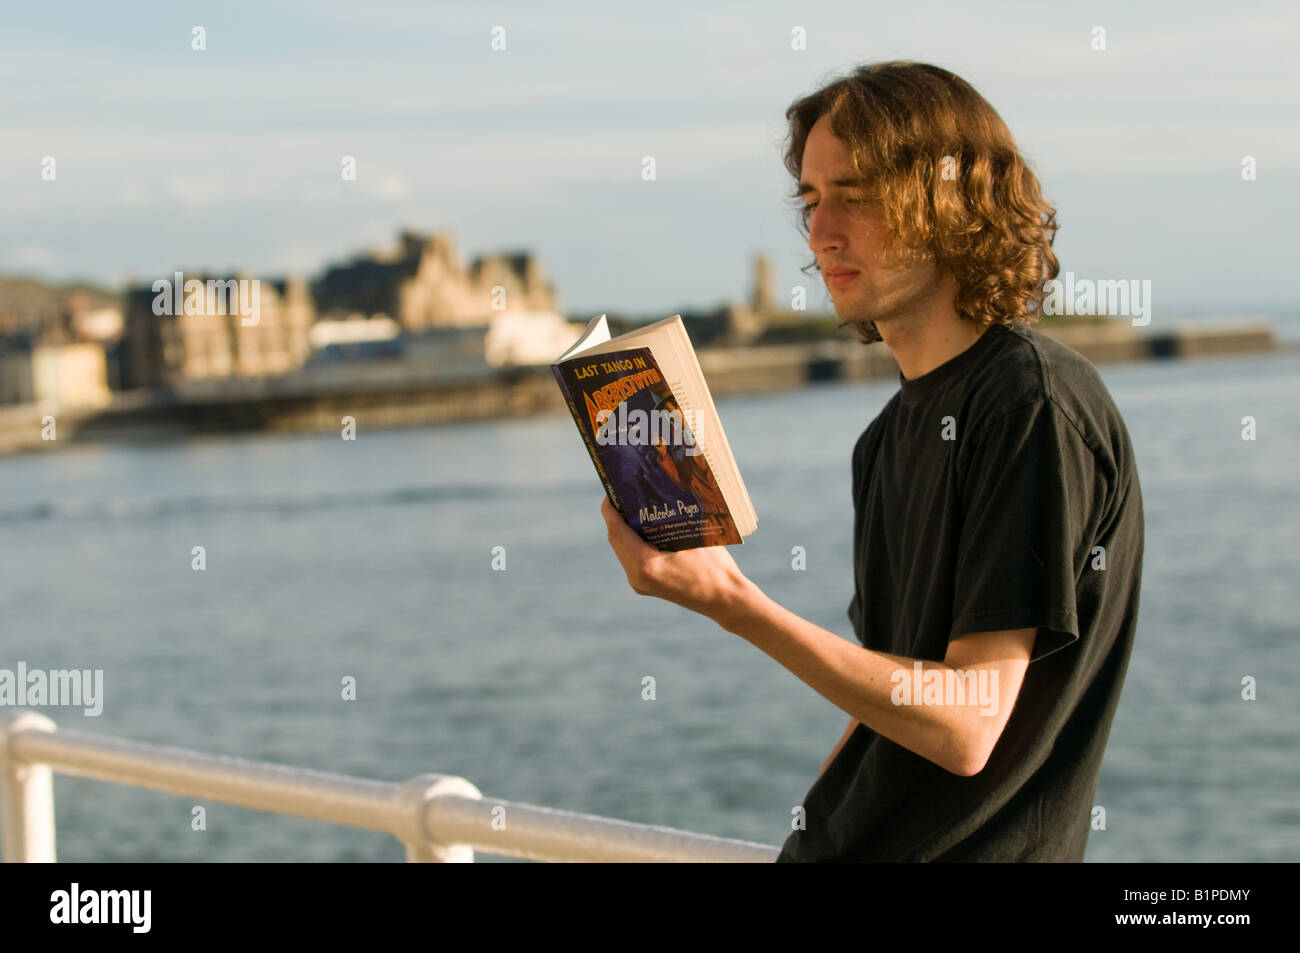 Young man reading  'Last Tango in Aberystwyth' by Malcolm Price on the promenade in Aberystwyth, summer - Stock Image